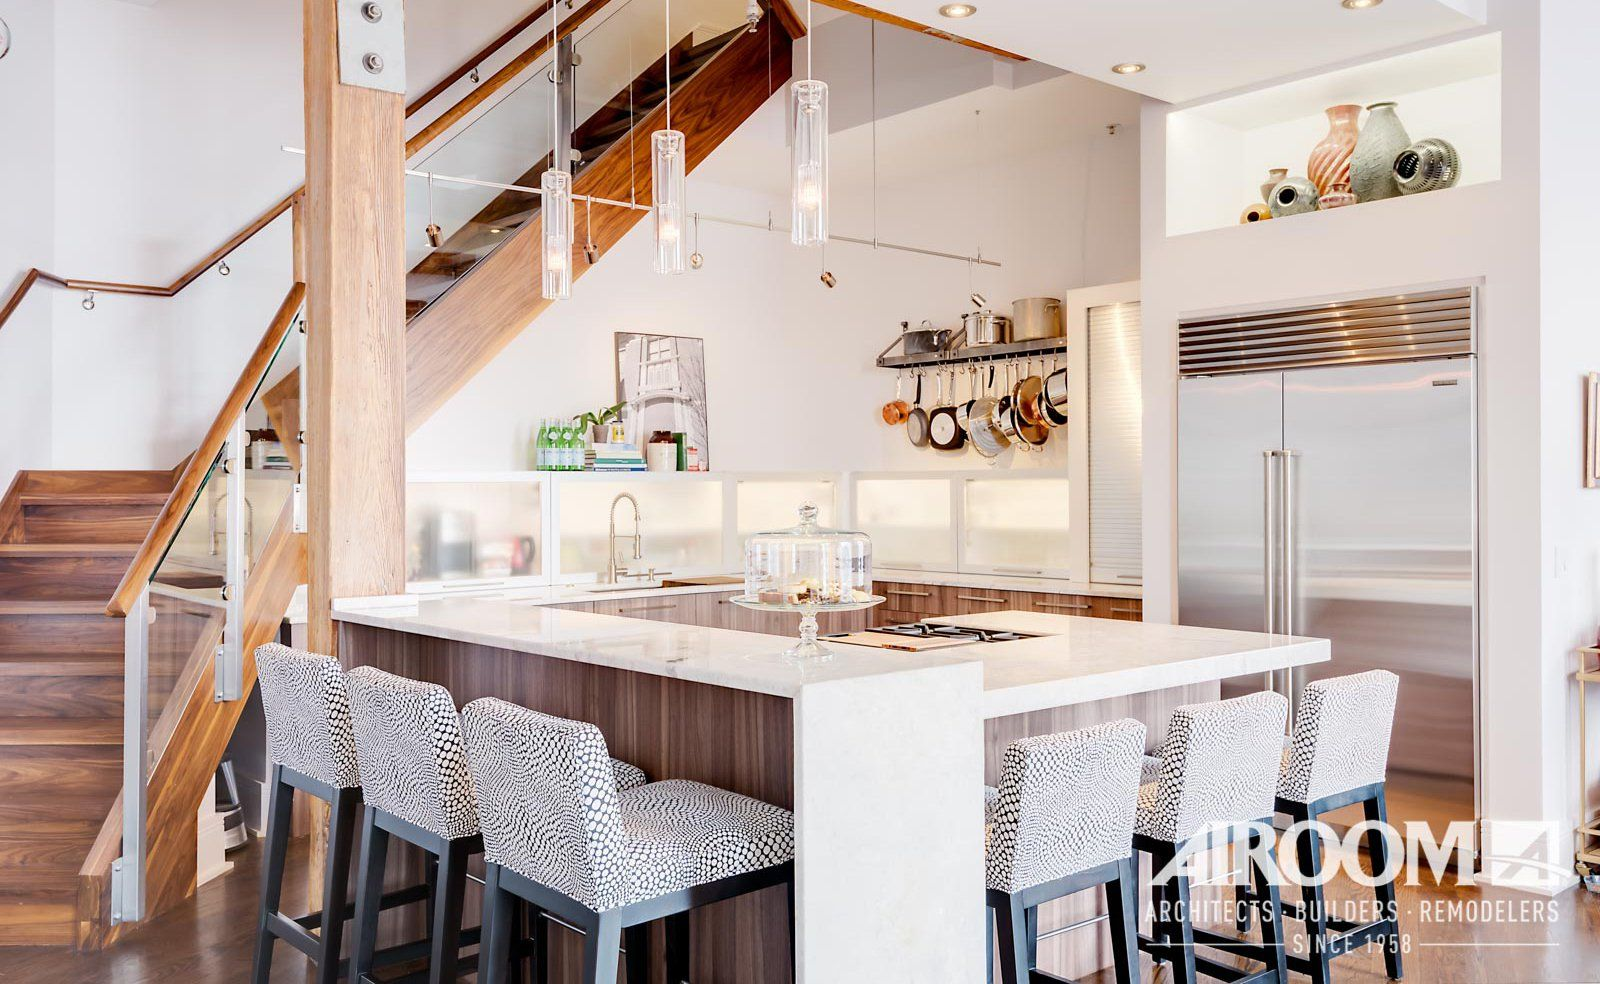 Kitchen Remodel: 3 Ways To Maximize Space